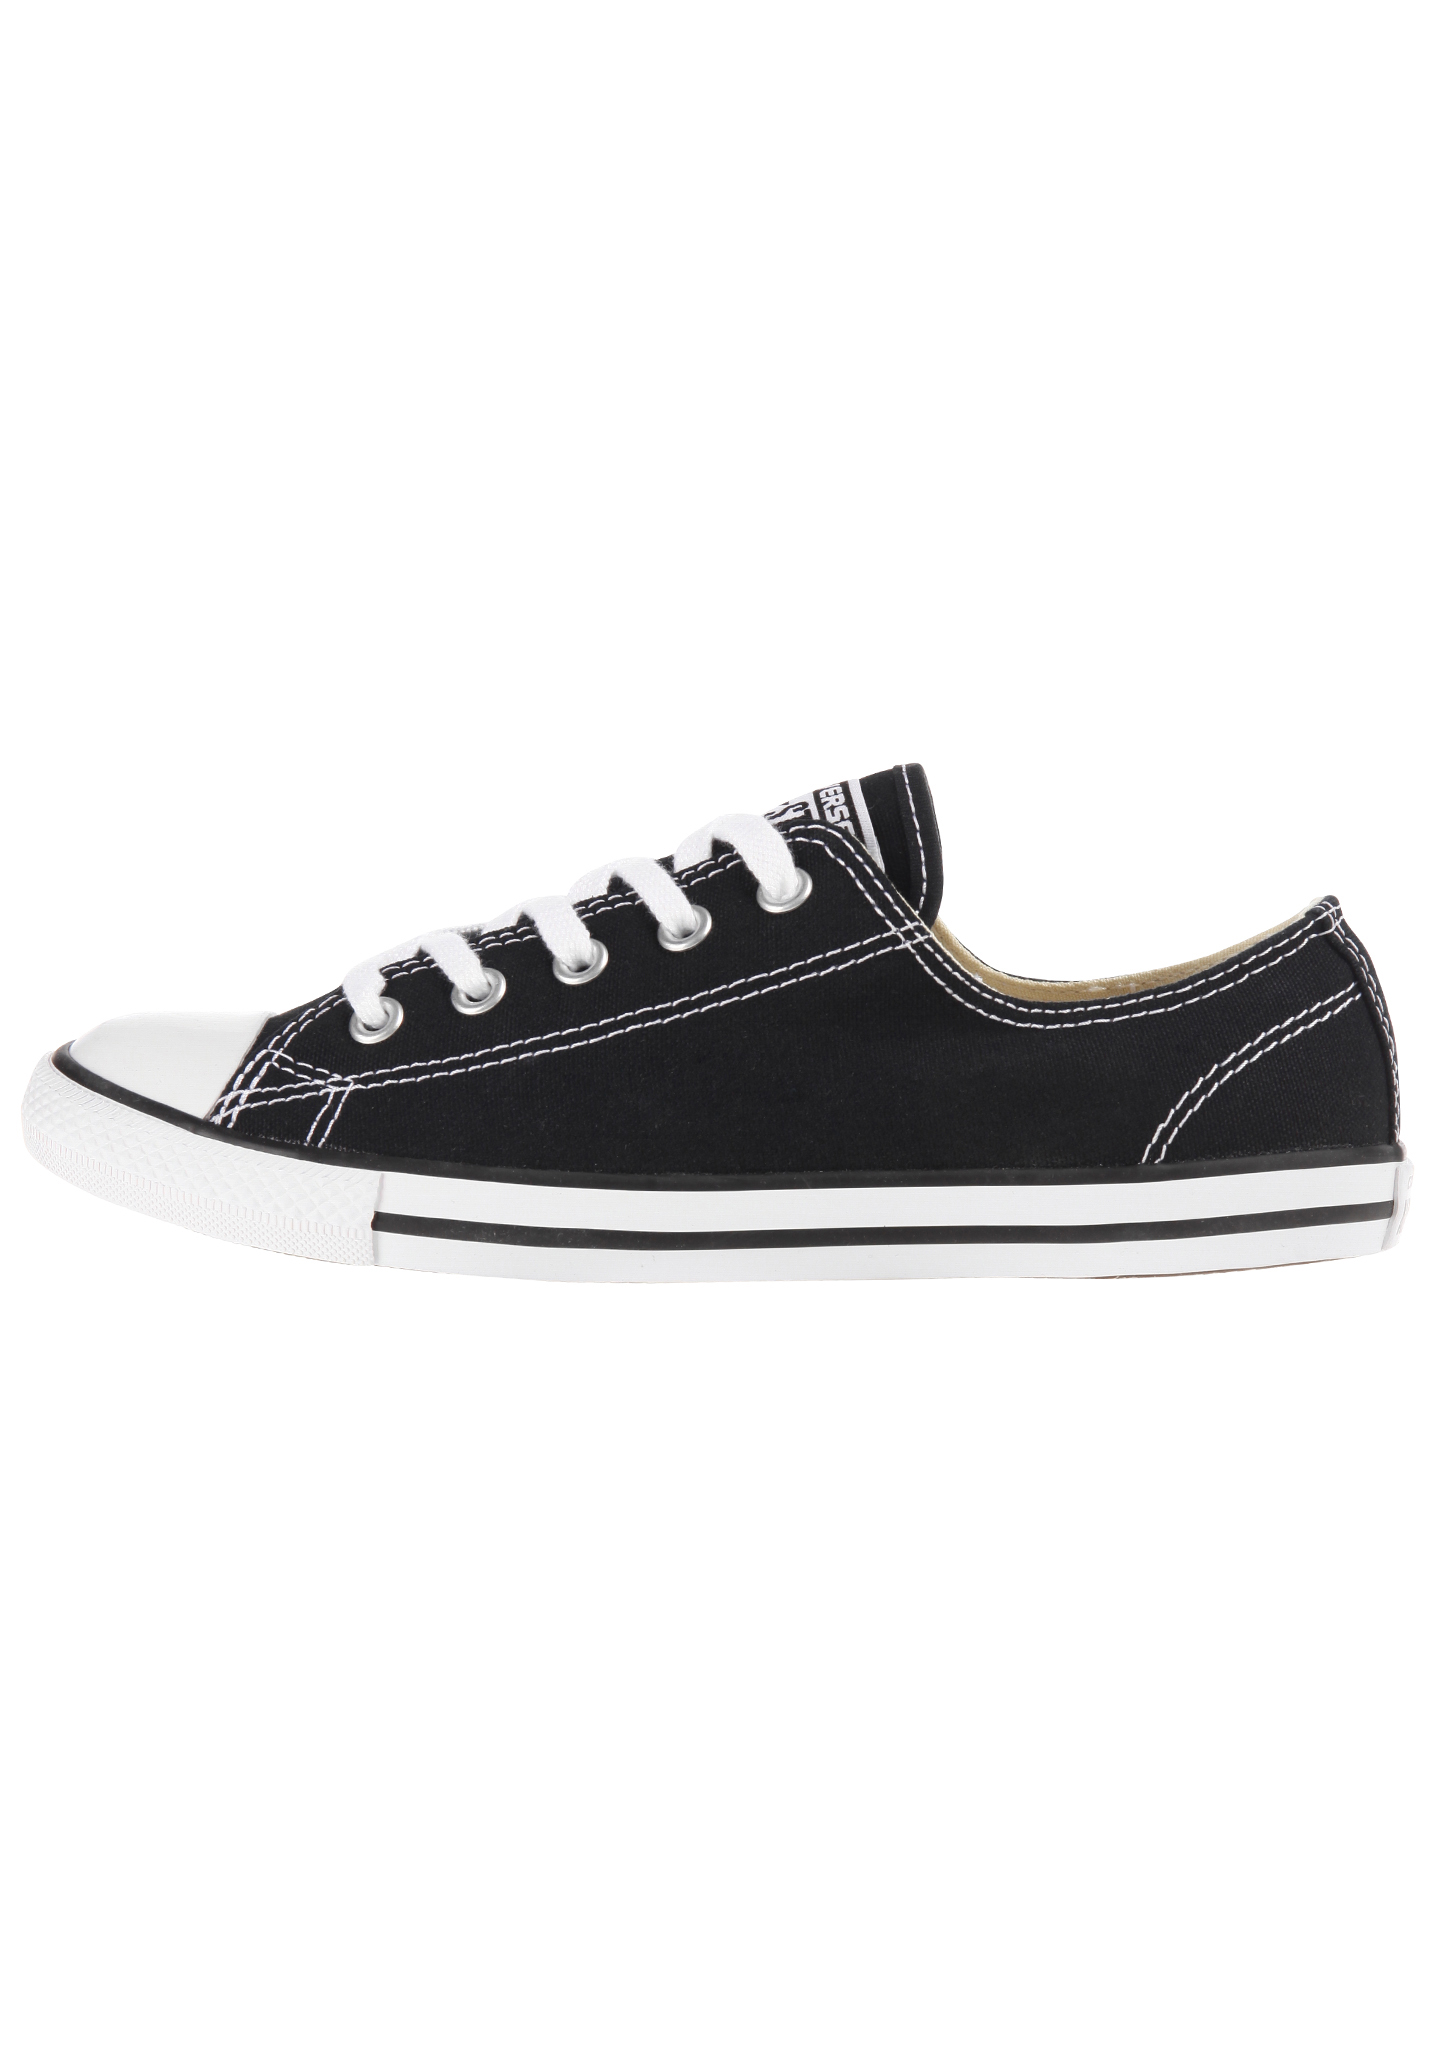 converse chuck taylor all star dainty ox damen sneaker. Black Bedroom Furniture Sets. Home Design Ideas